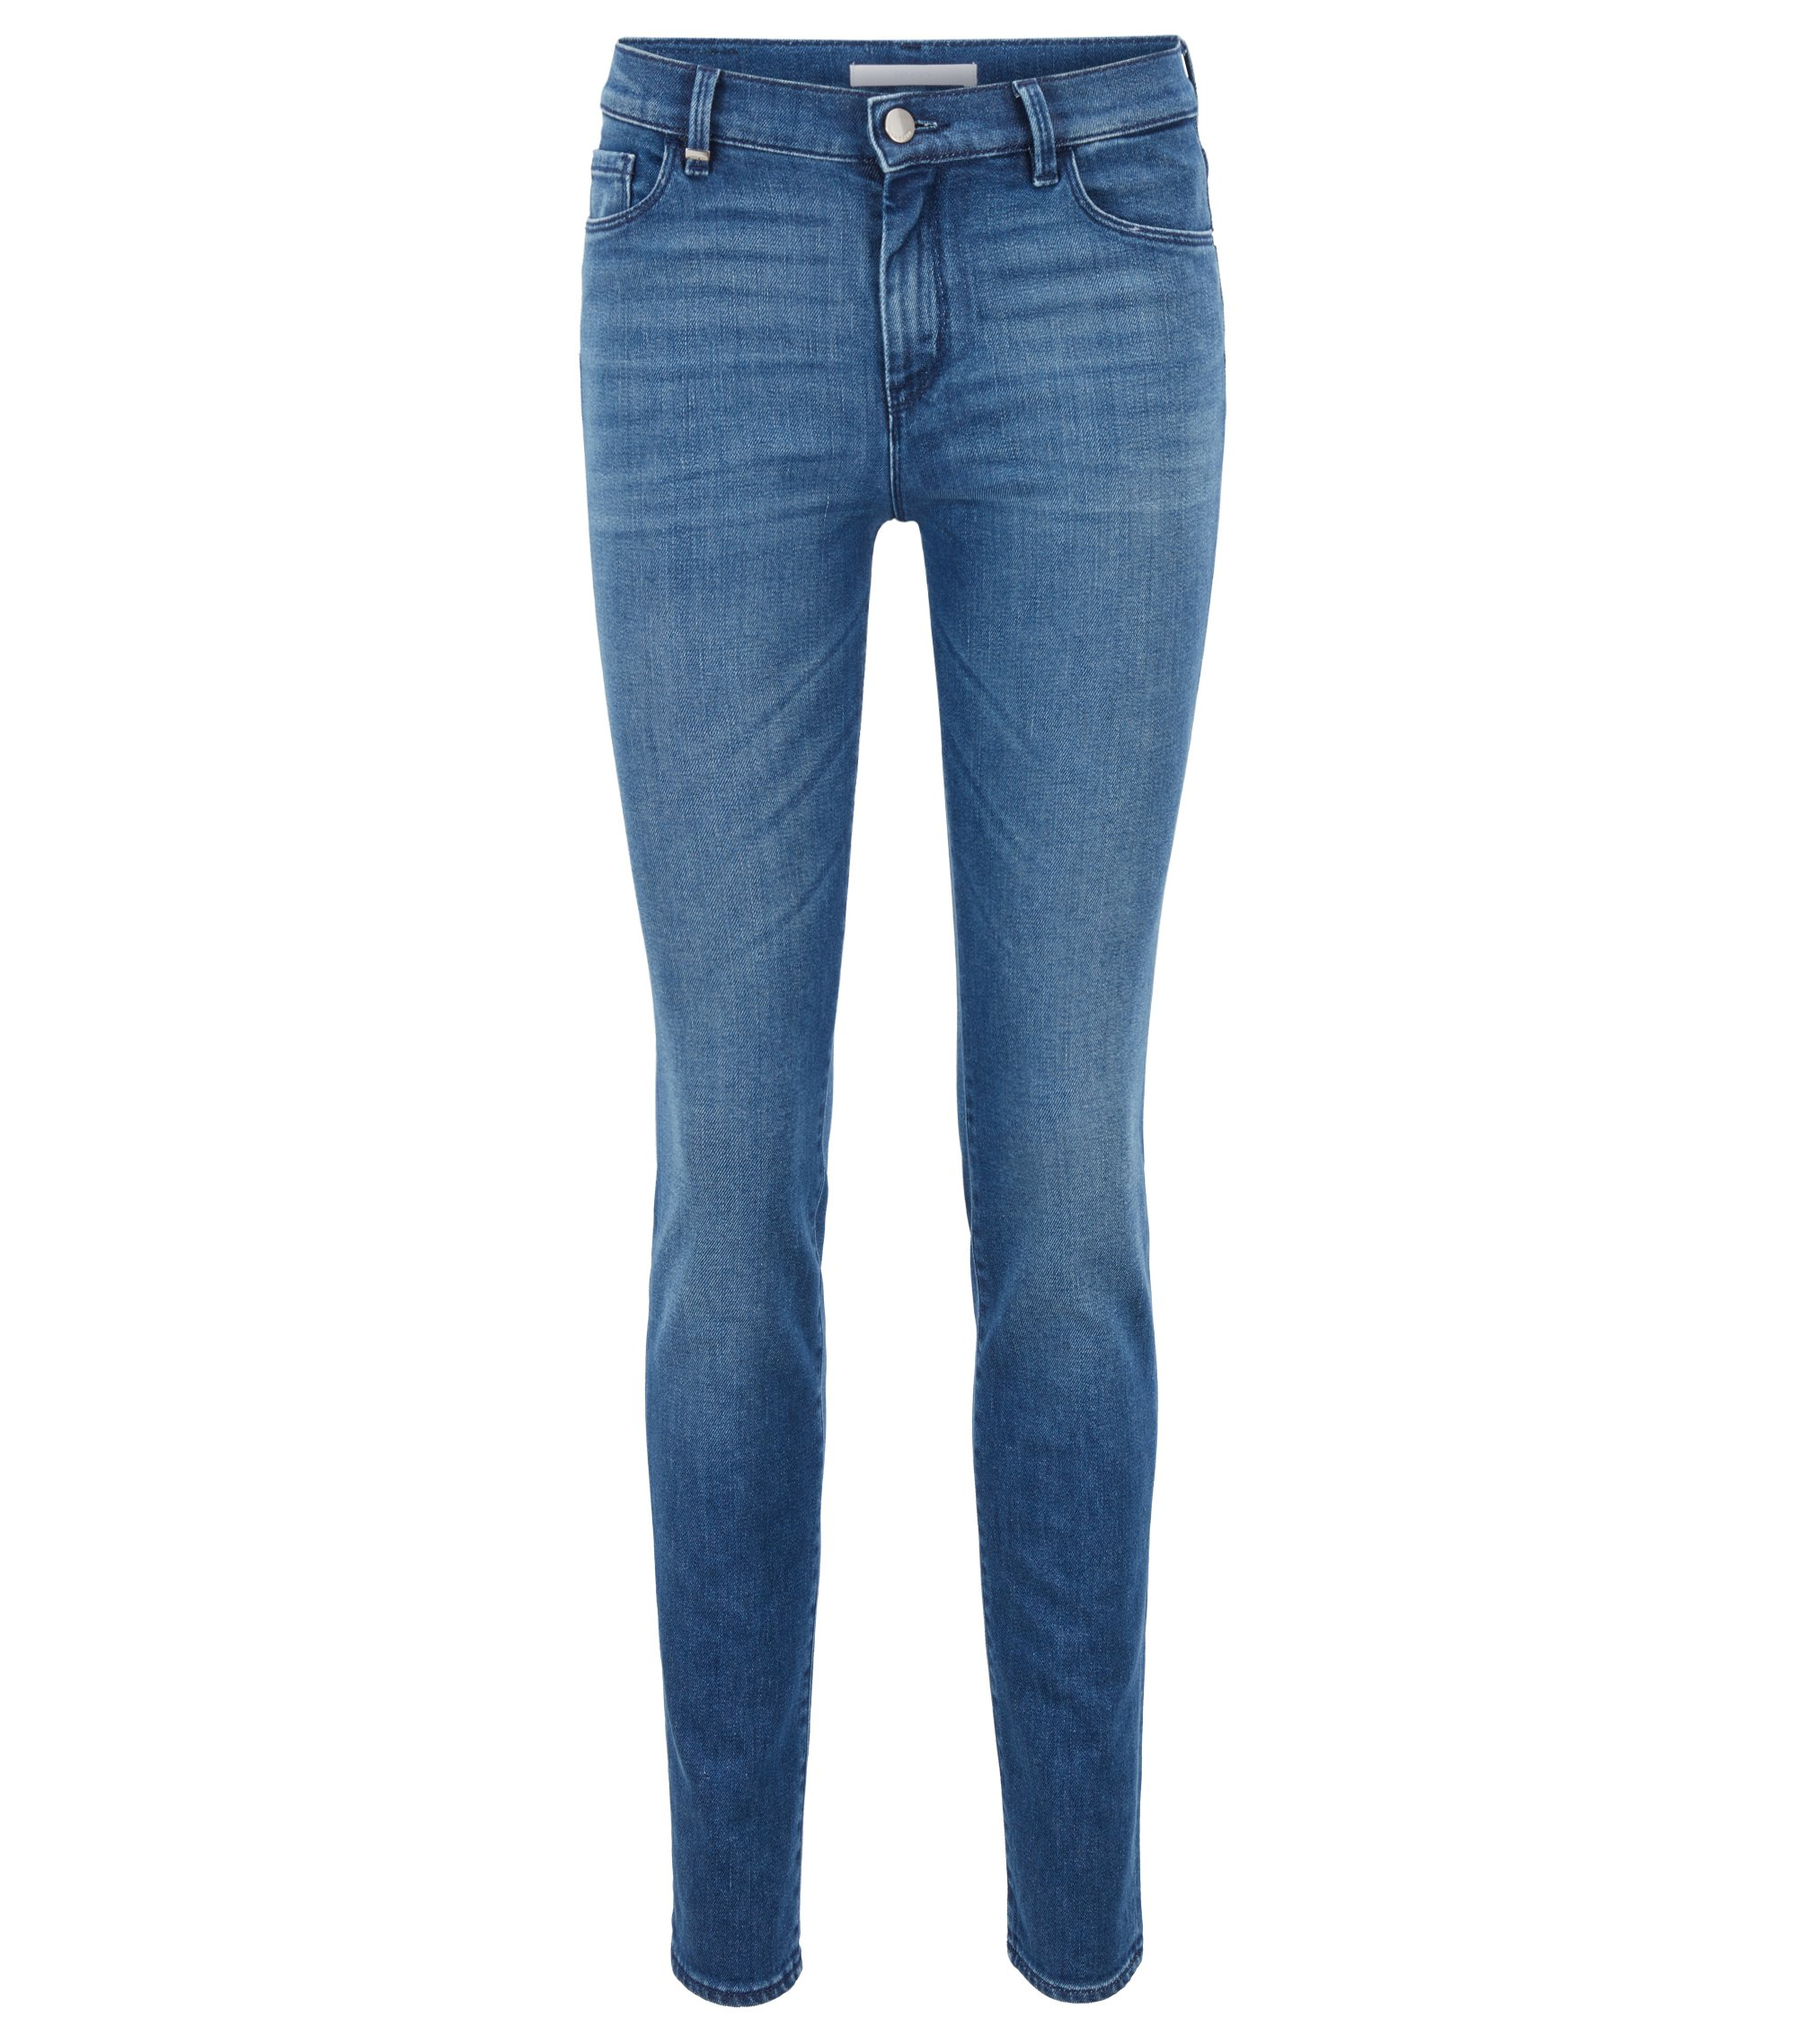 Jean Slim Fit en denim stretch confortable bleu moyen, Bleu